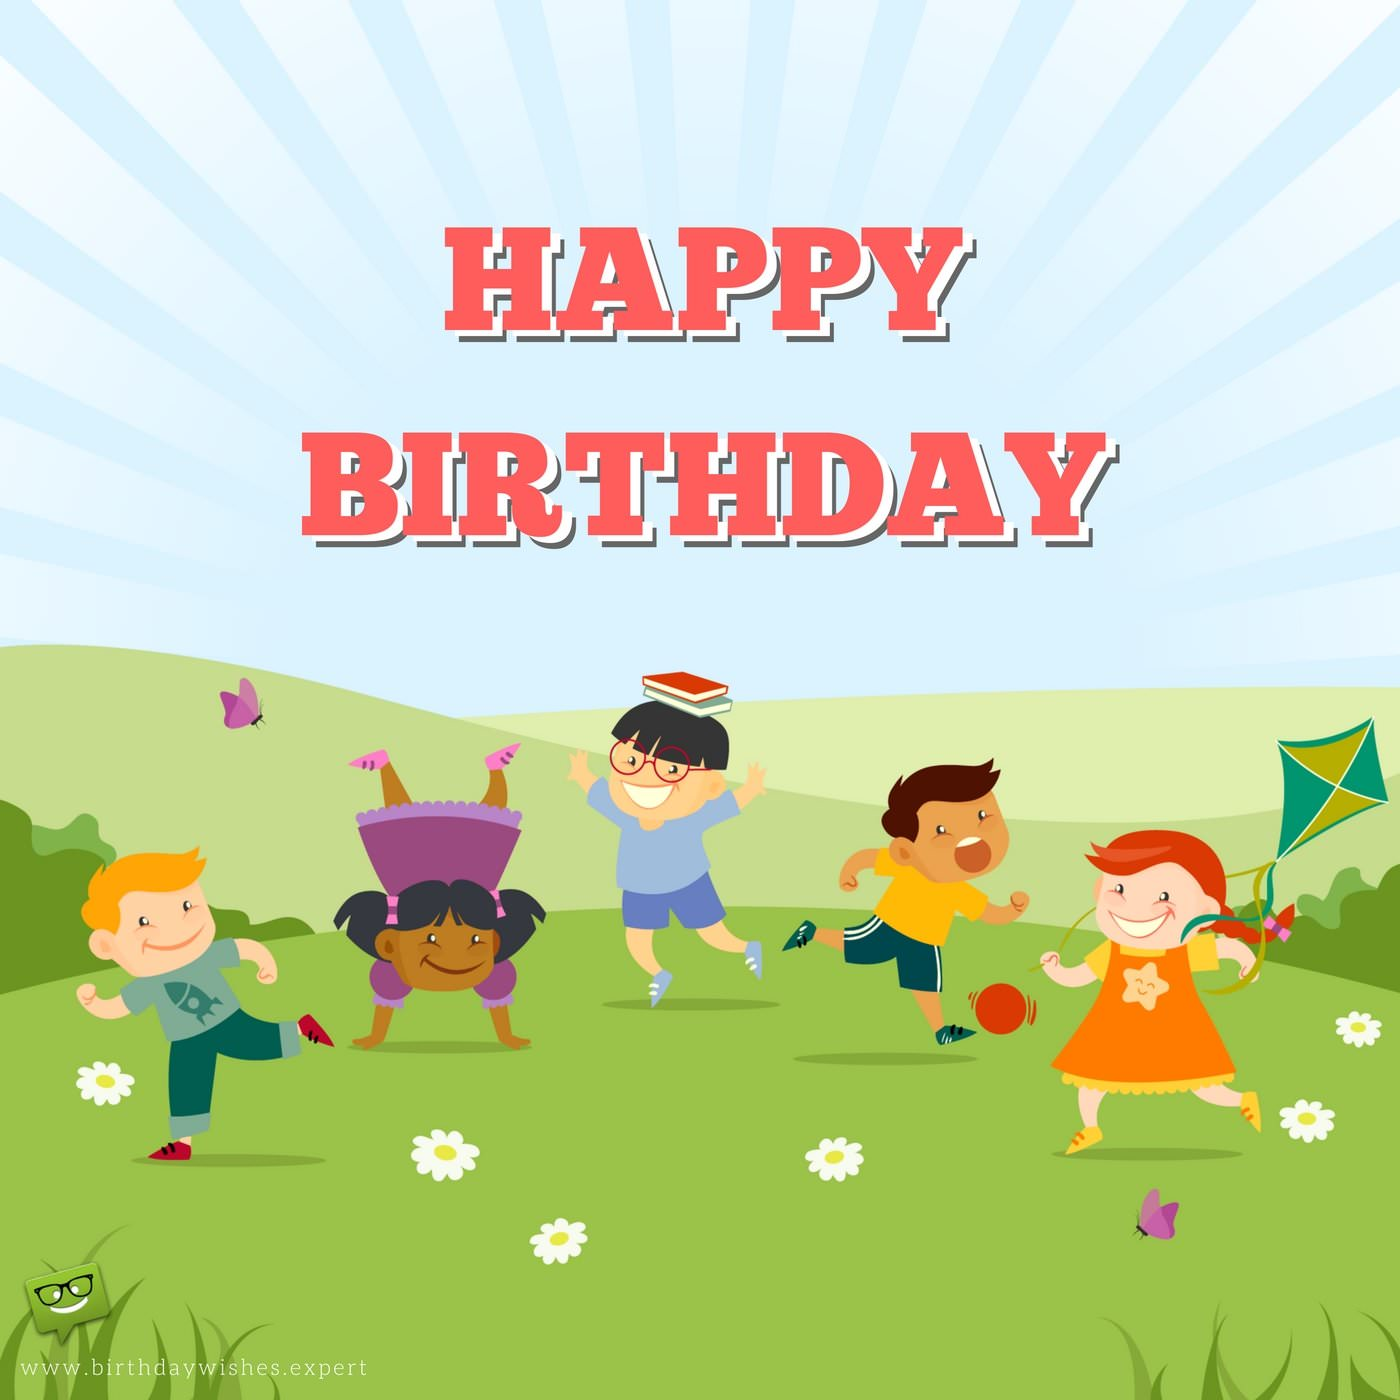 happy birthday message for kids ; Happy-Birthday-wish-for-preschool-children-on-image-with-happy-kids-playing